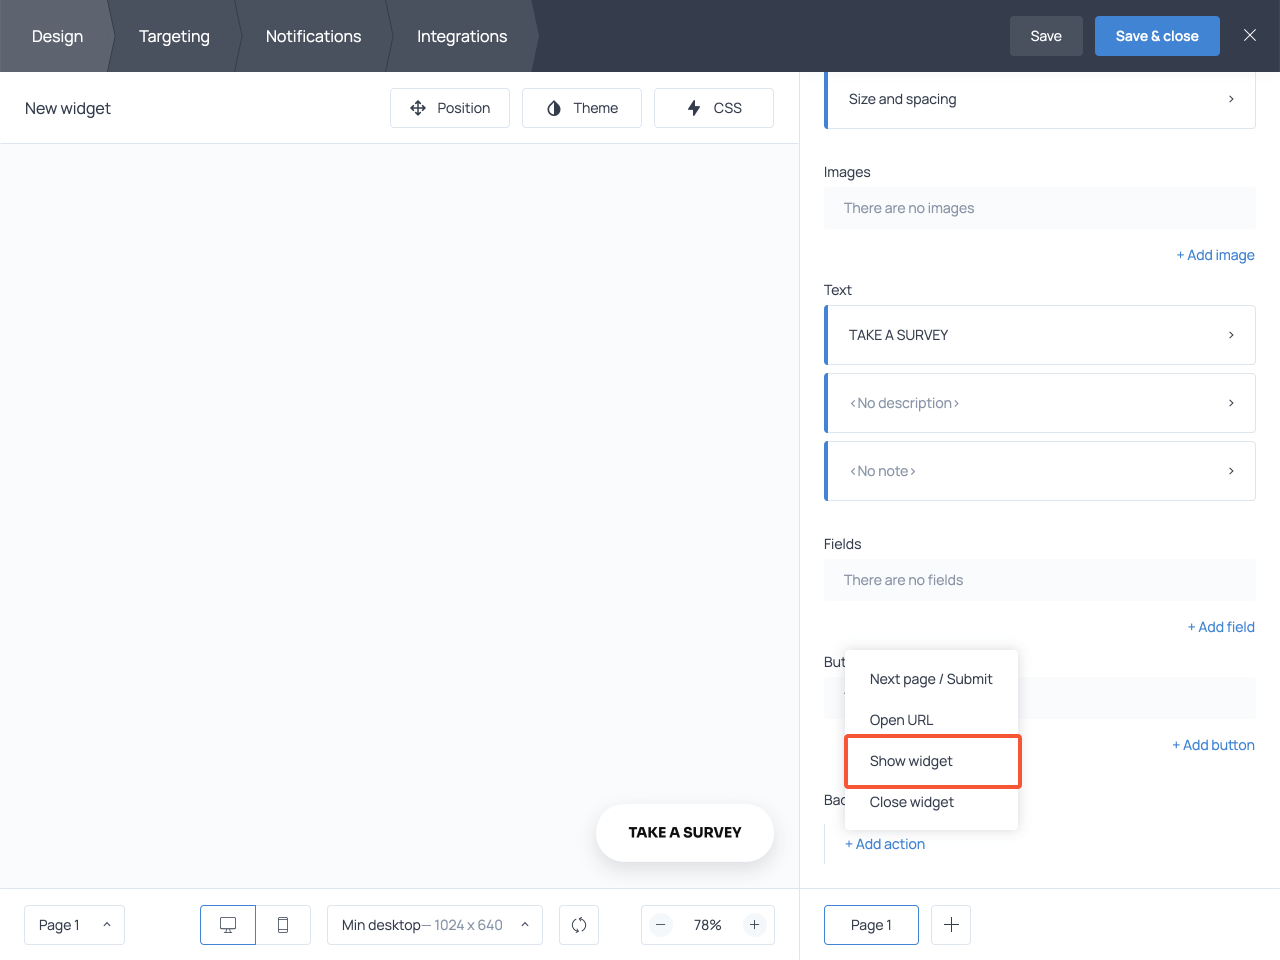 Adding a Show widget action in the Background click section